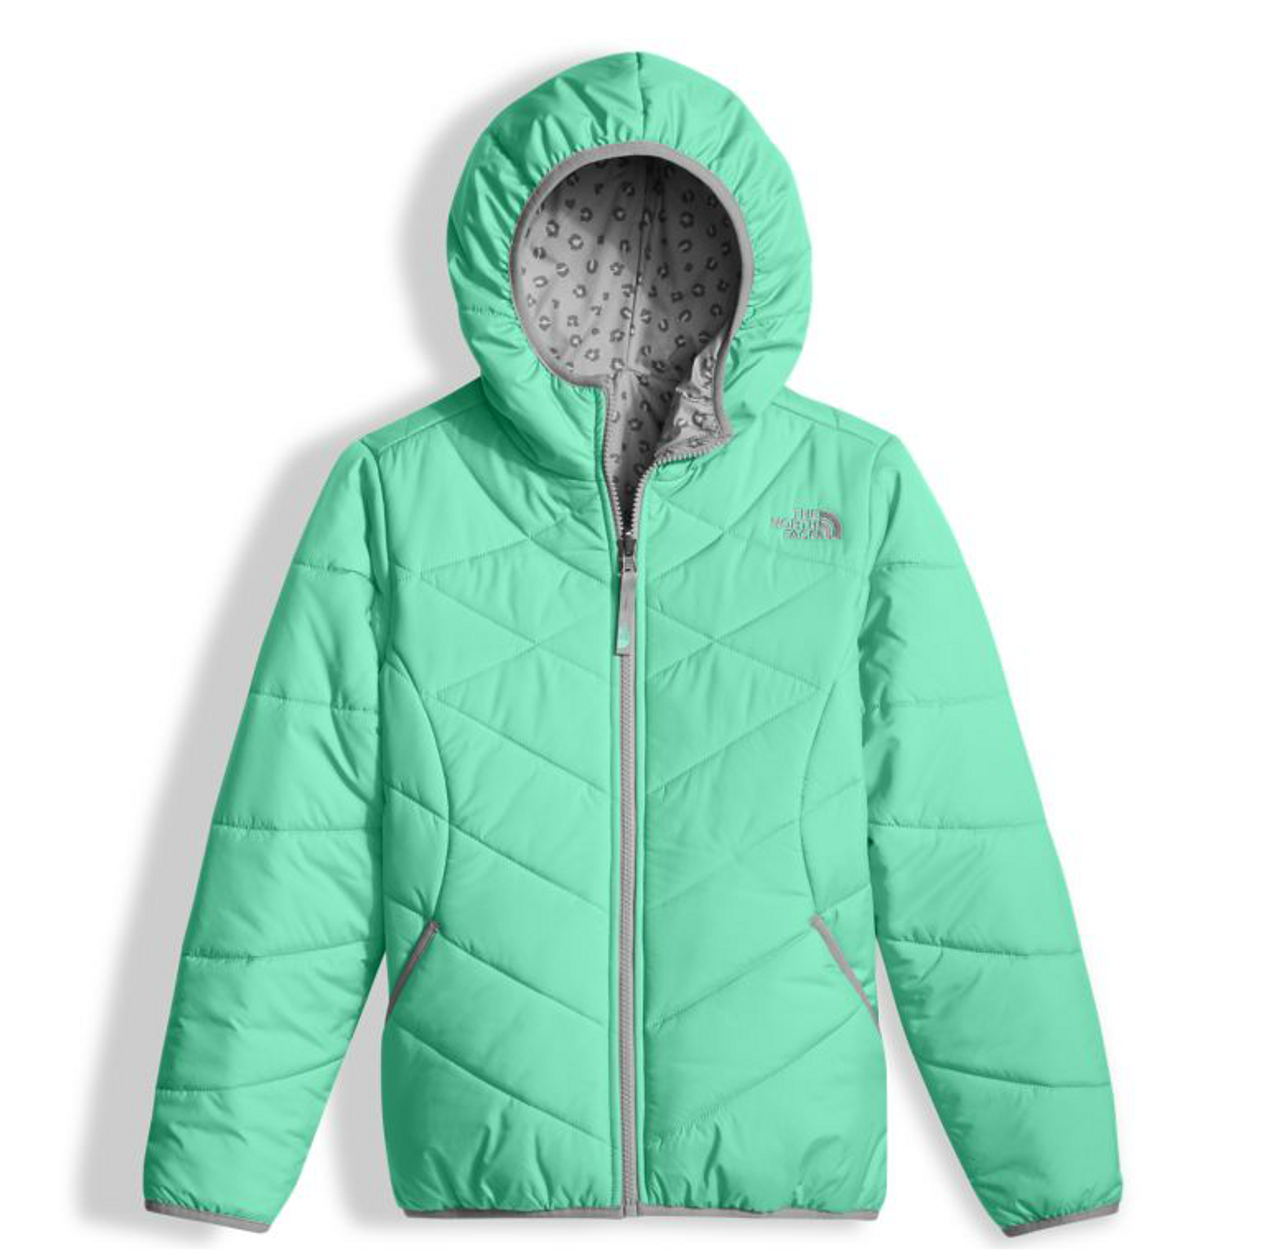 c3ce8e75a The North Face Reversible Perrito Jacket '18 | Girl's